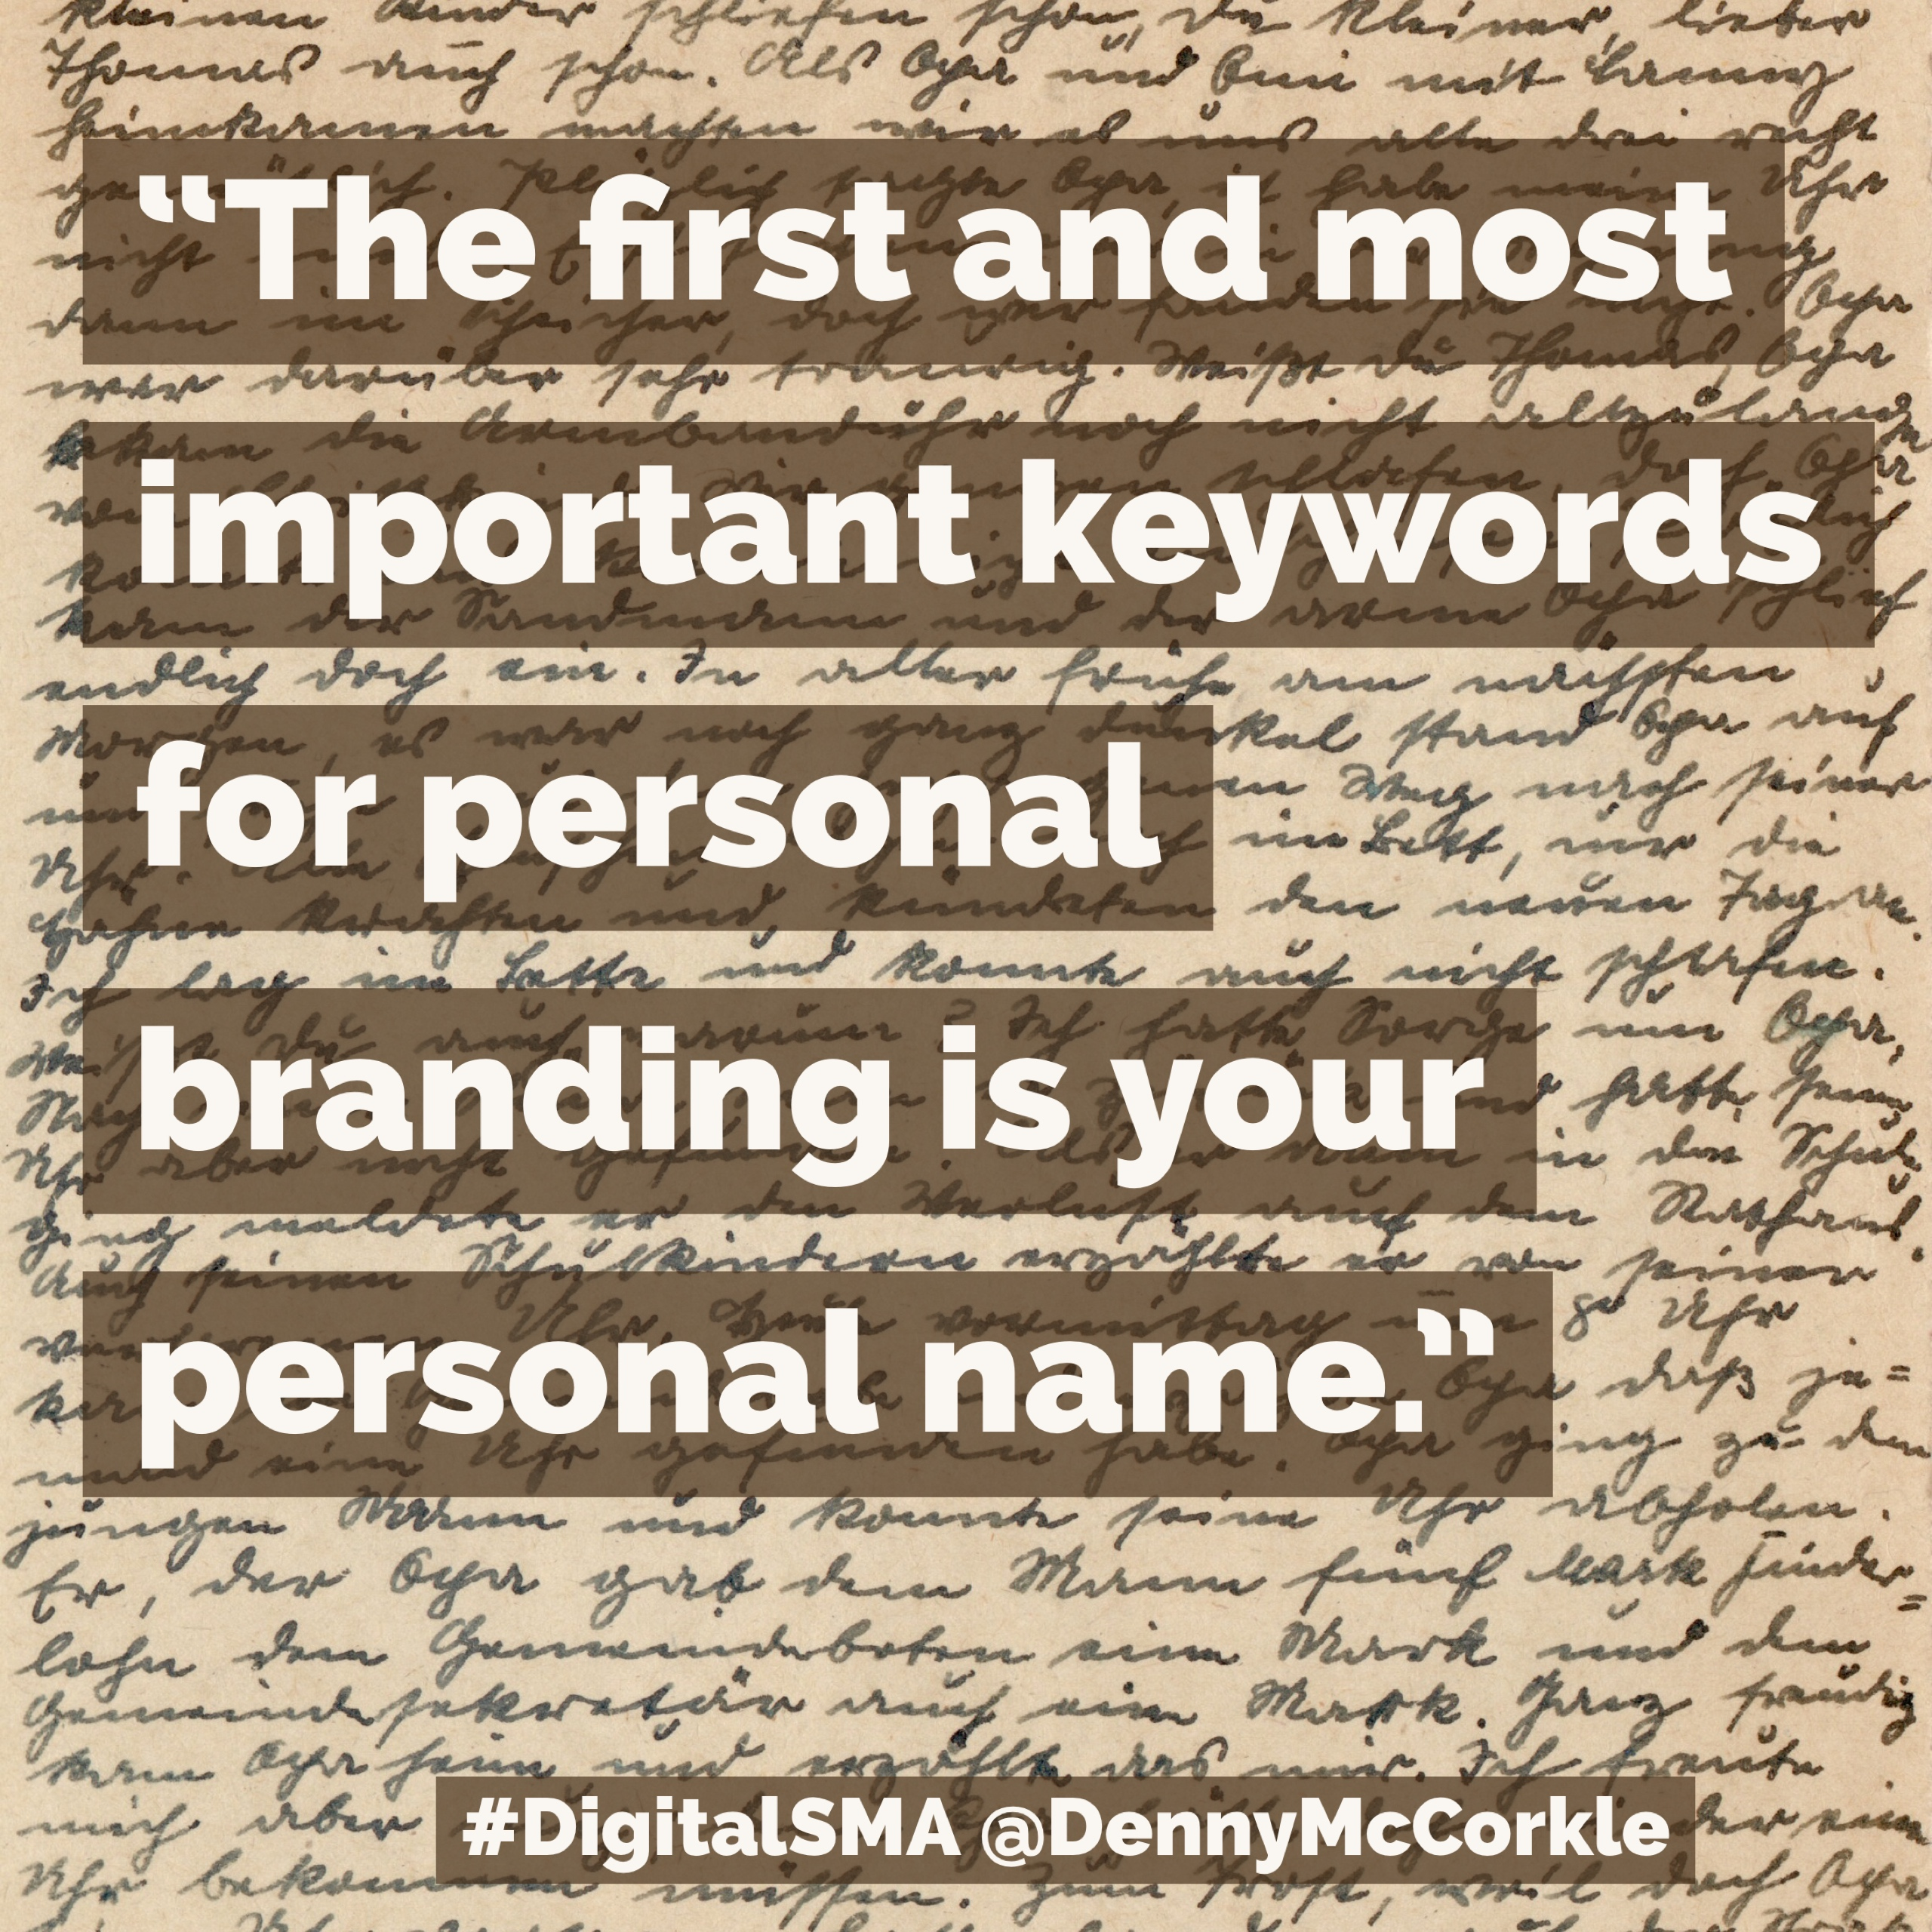 google yourself for personal name seo and personal